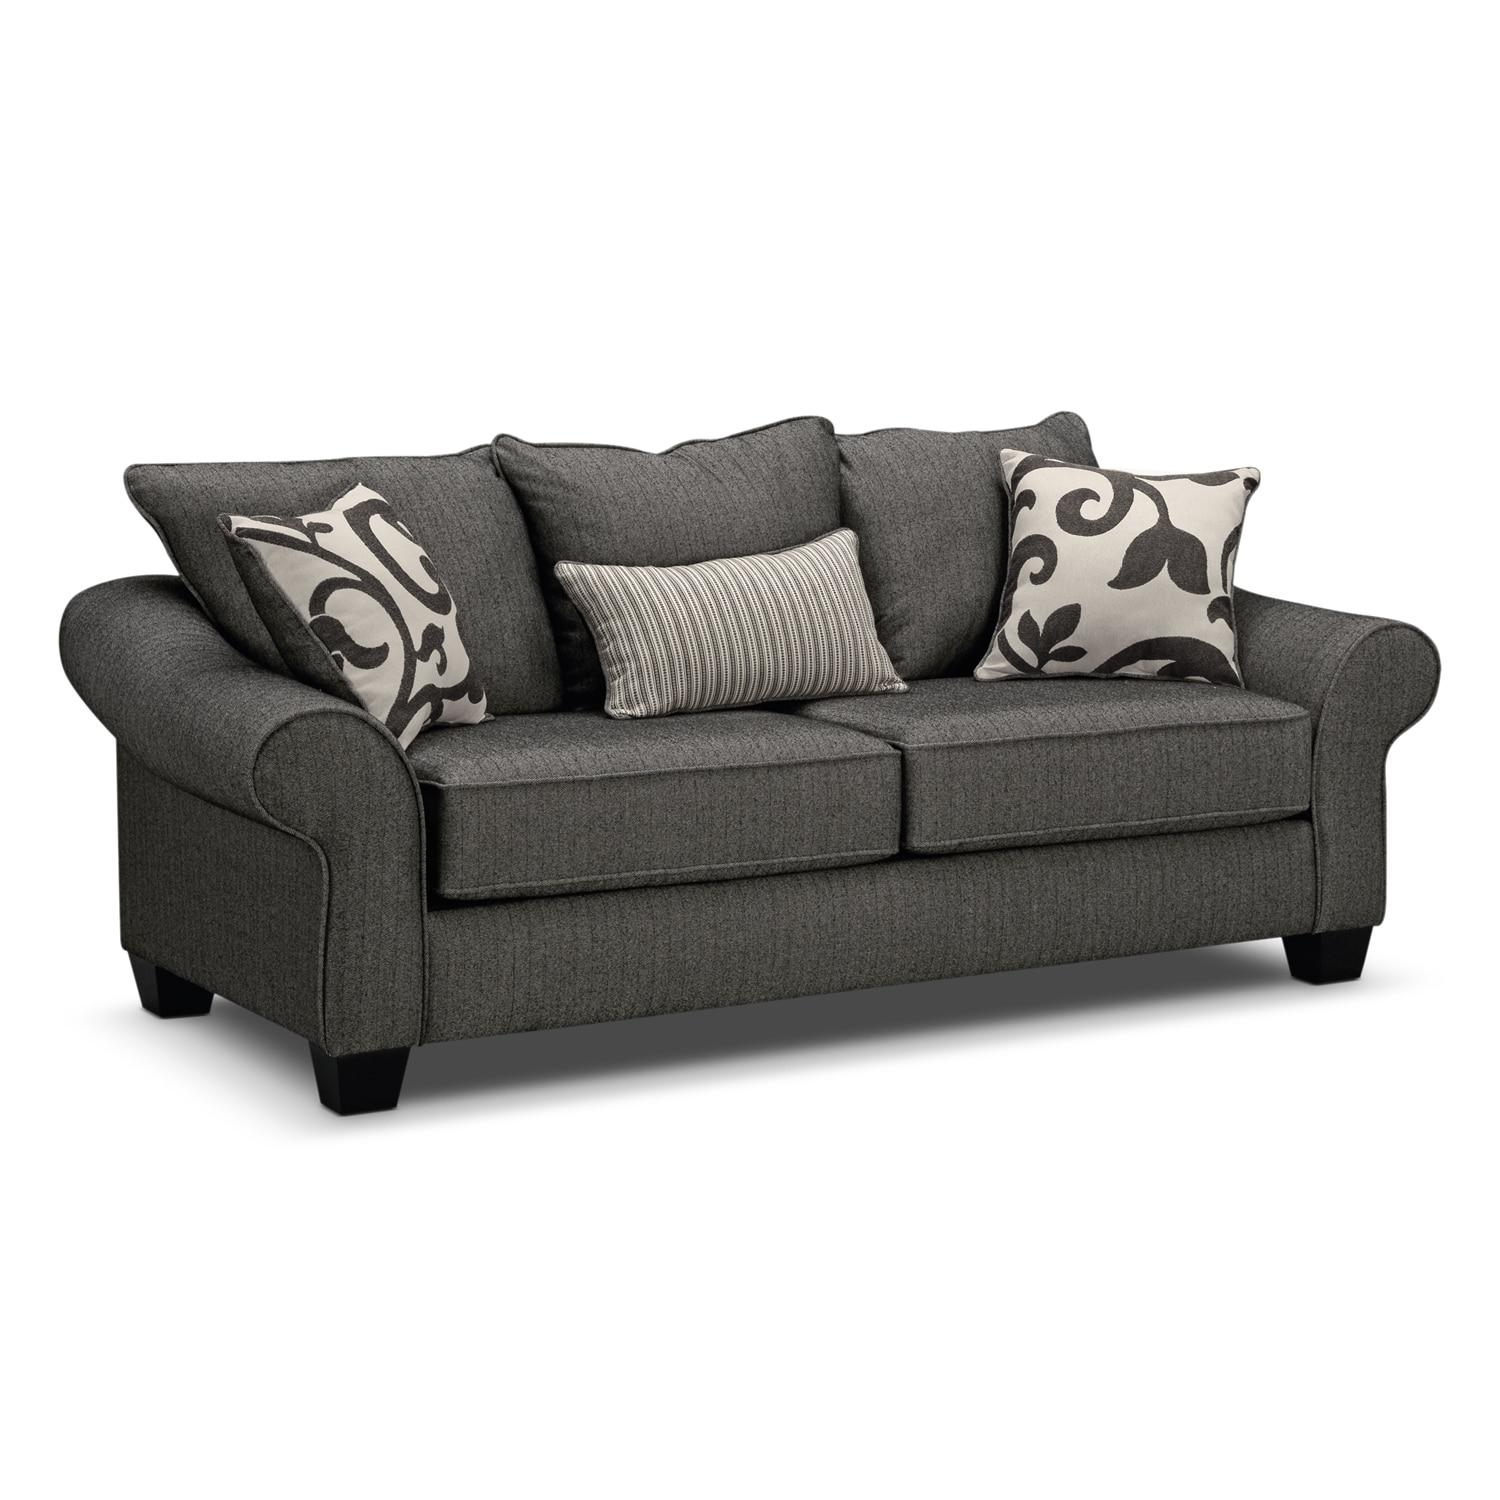 Colette Sofa And Accent Chair Set – Gray | Value City Furniture For Sofa And Accent Chair Set (View 12 of 20)